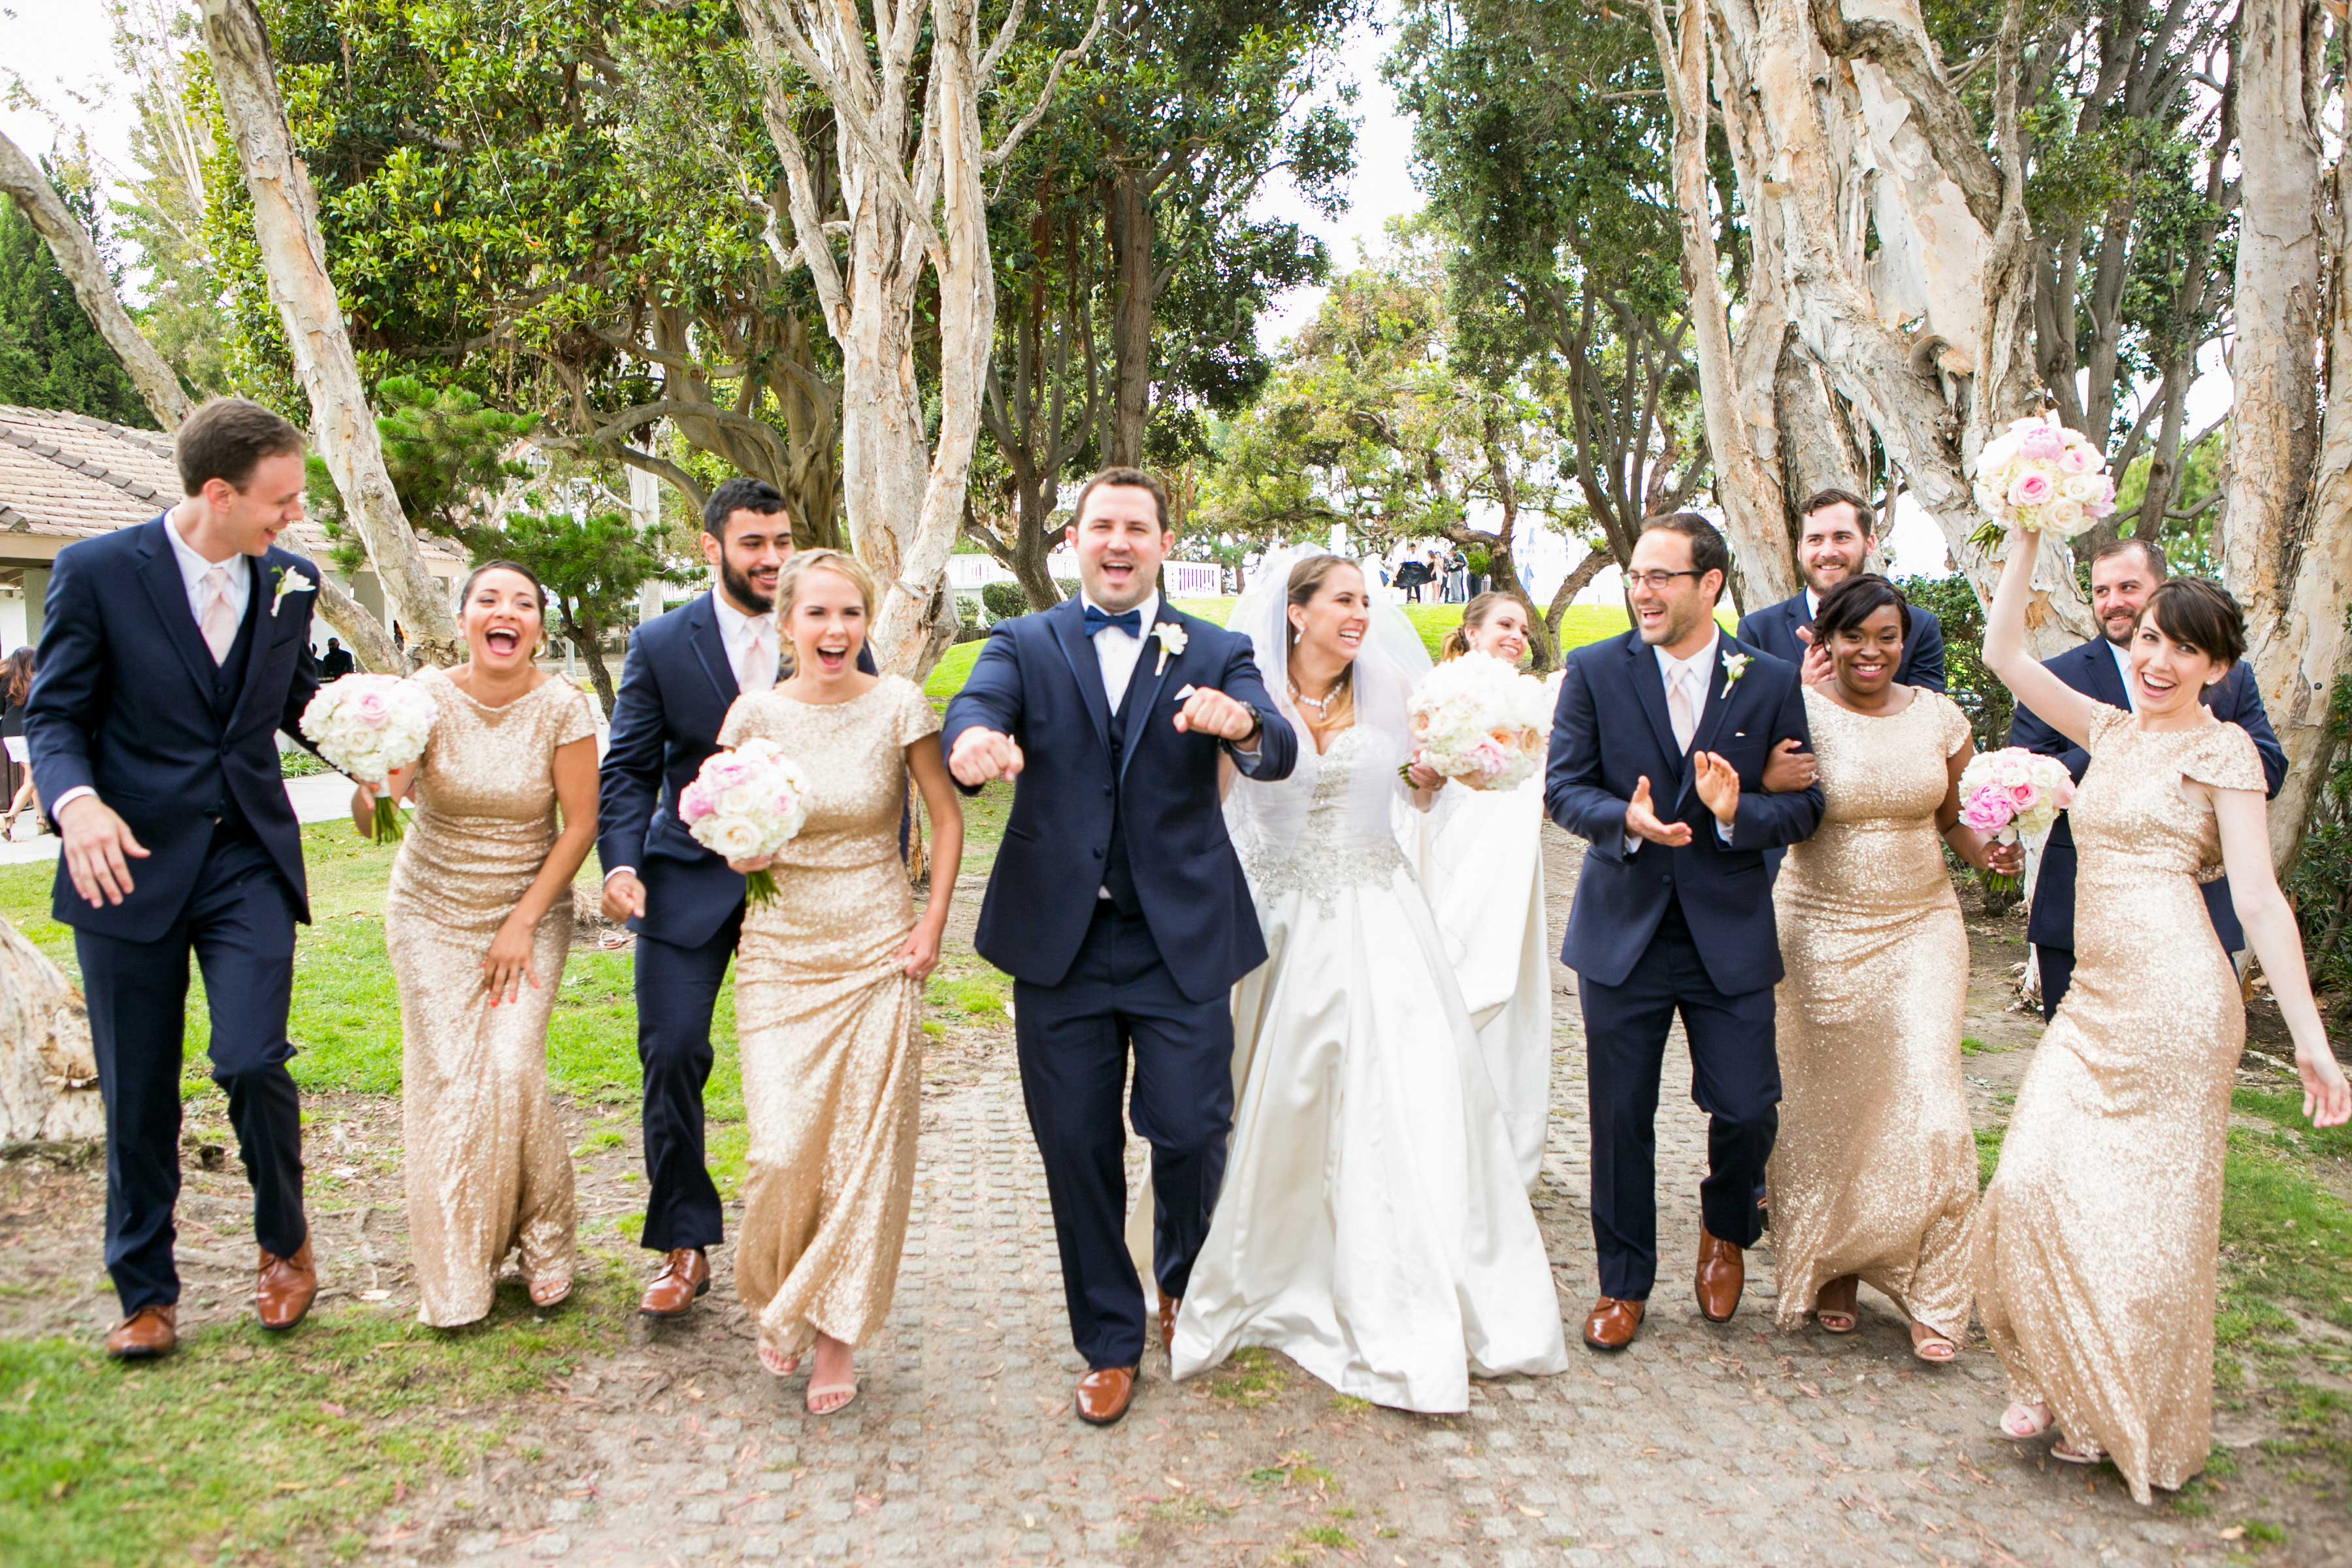 wedding party with bridesmaids and groomsmen alternating, walk and laugh